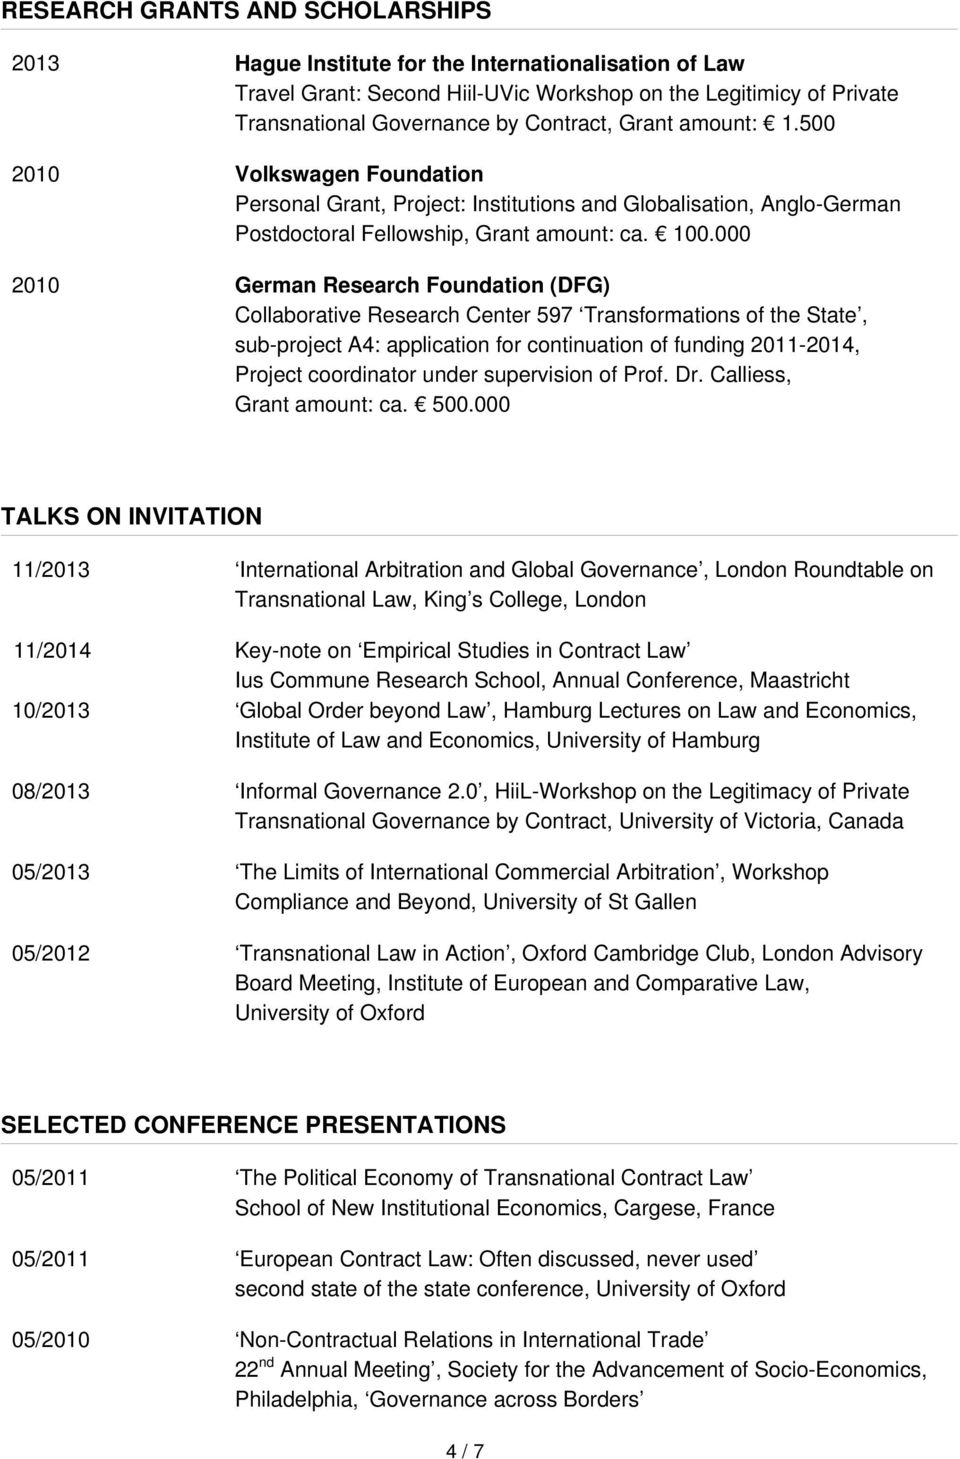 000 2010 German Research Foundation (DFG) Collaborative Research Center 597 Transformations of the State, sub-project A4: application for continuation of funding 2011-2014, Project coordinator under